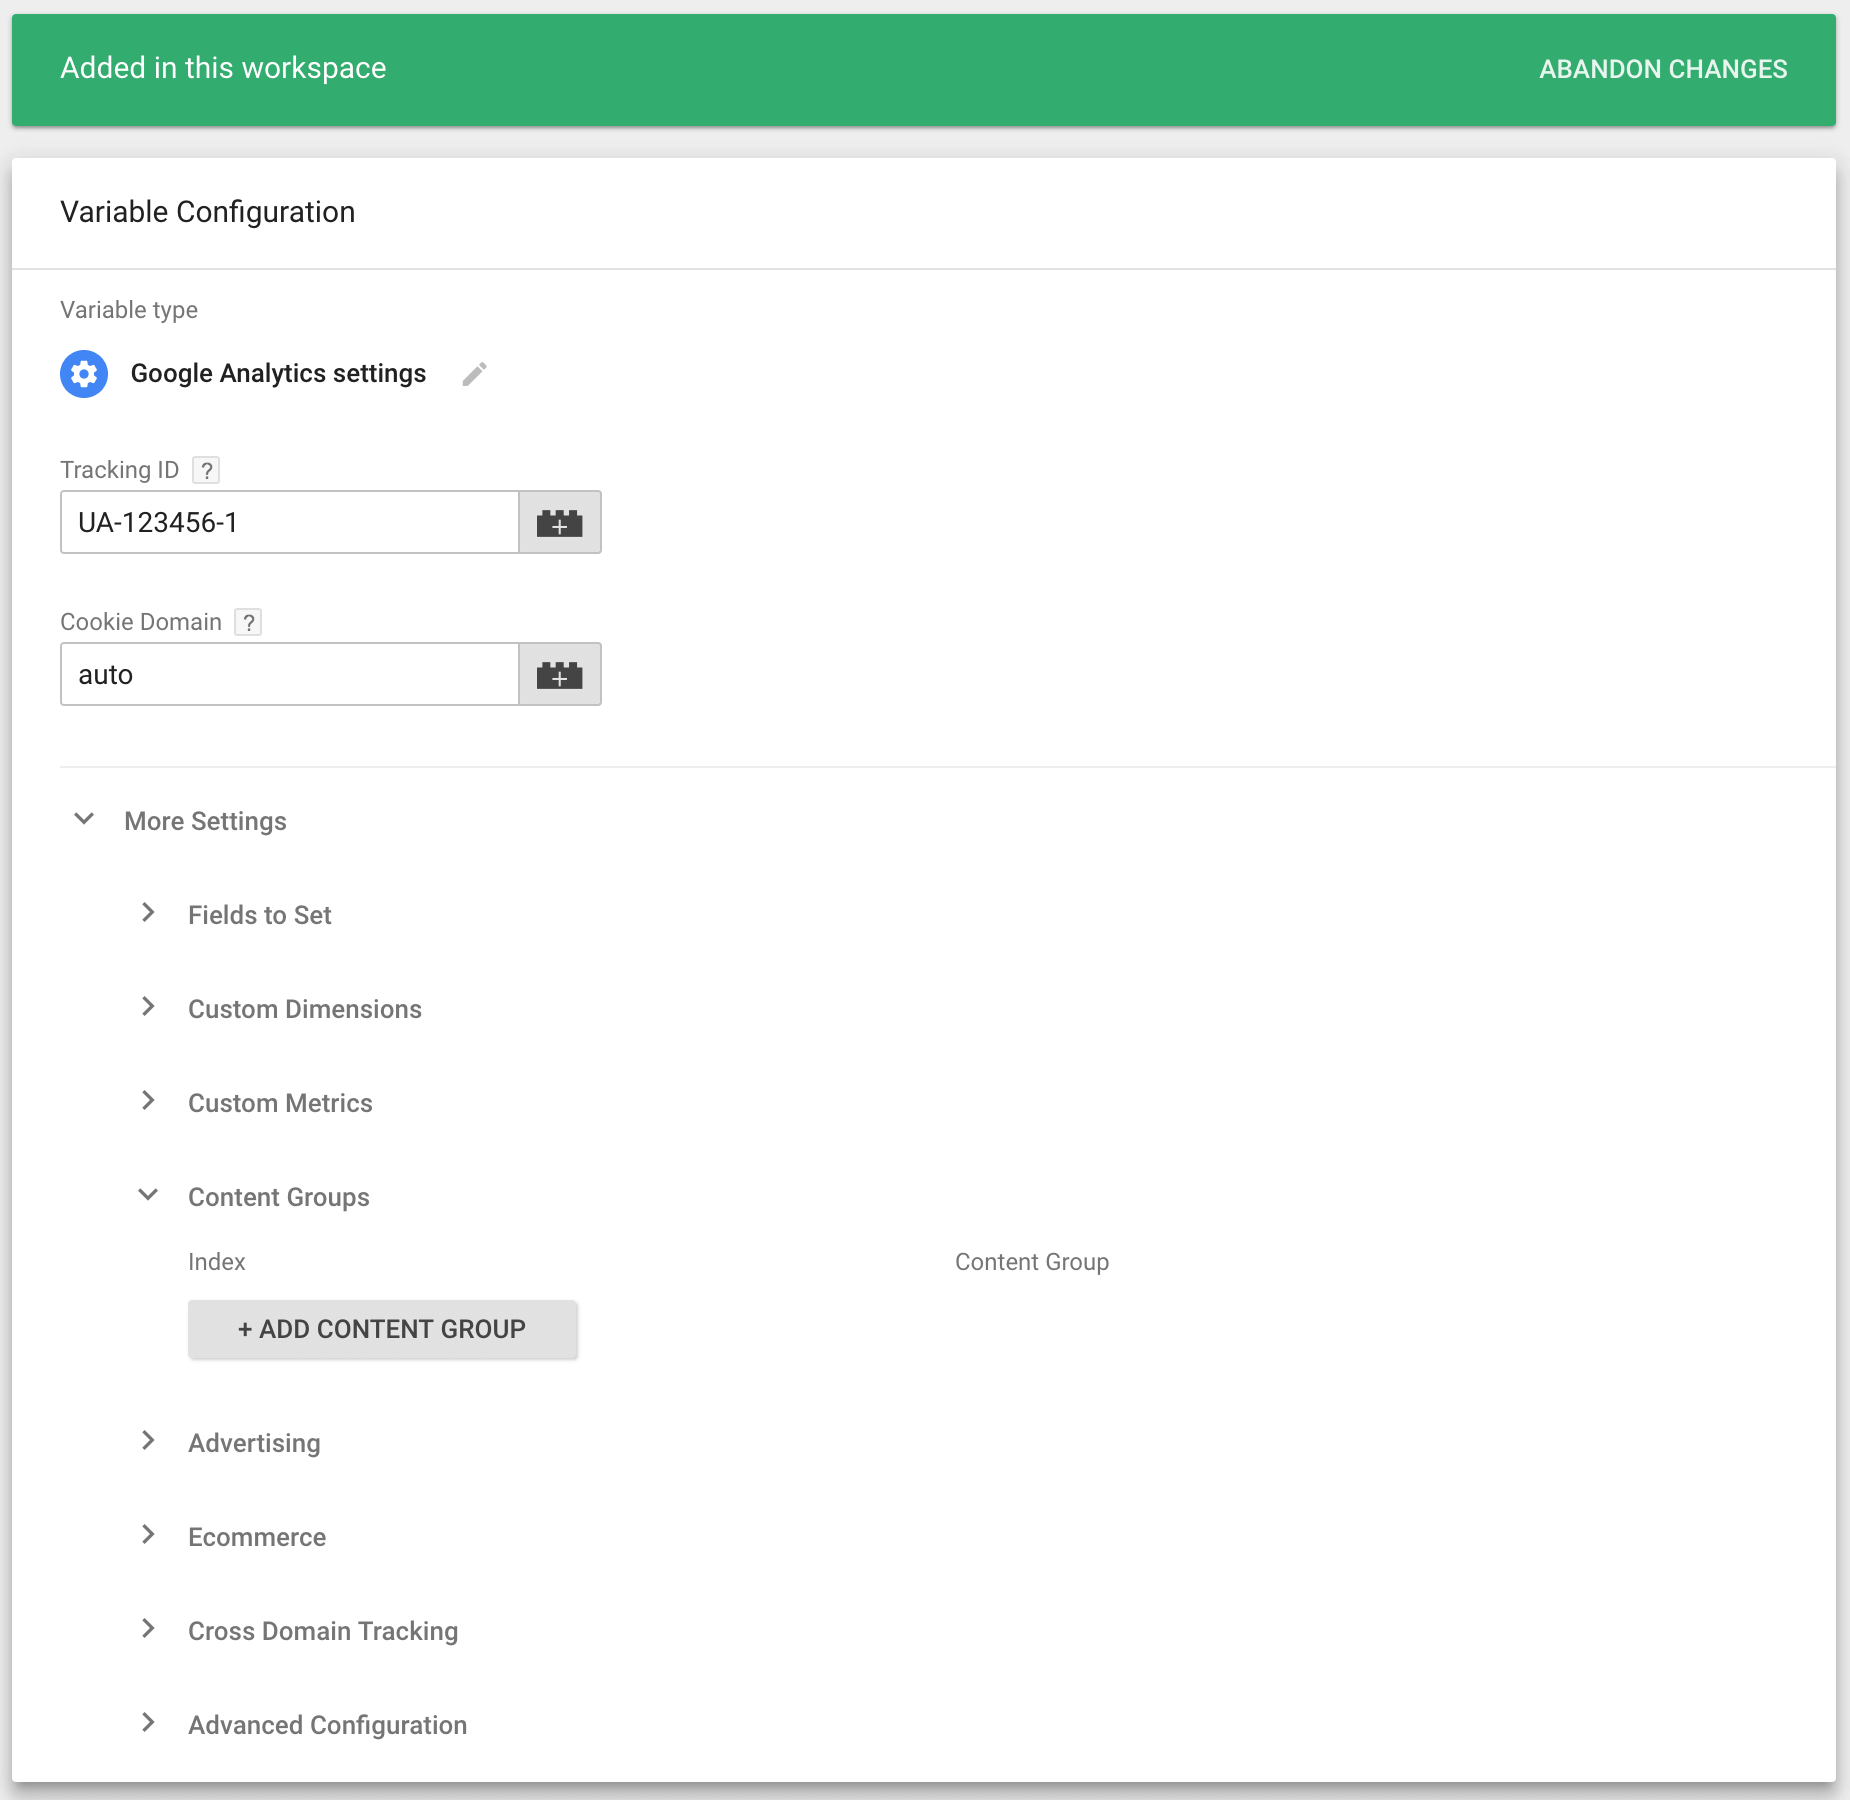 Adding Content Grouping in Google Tag Manager